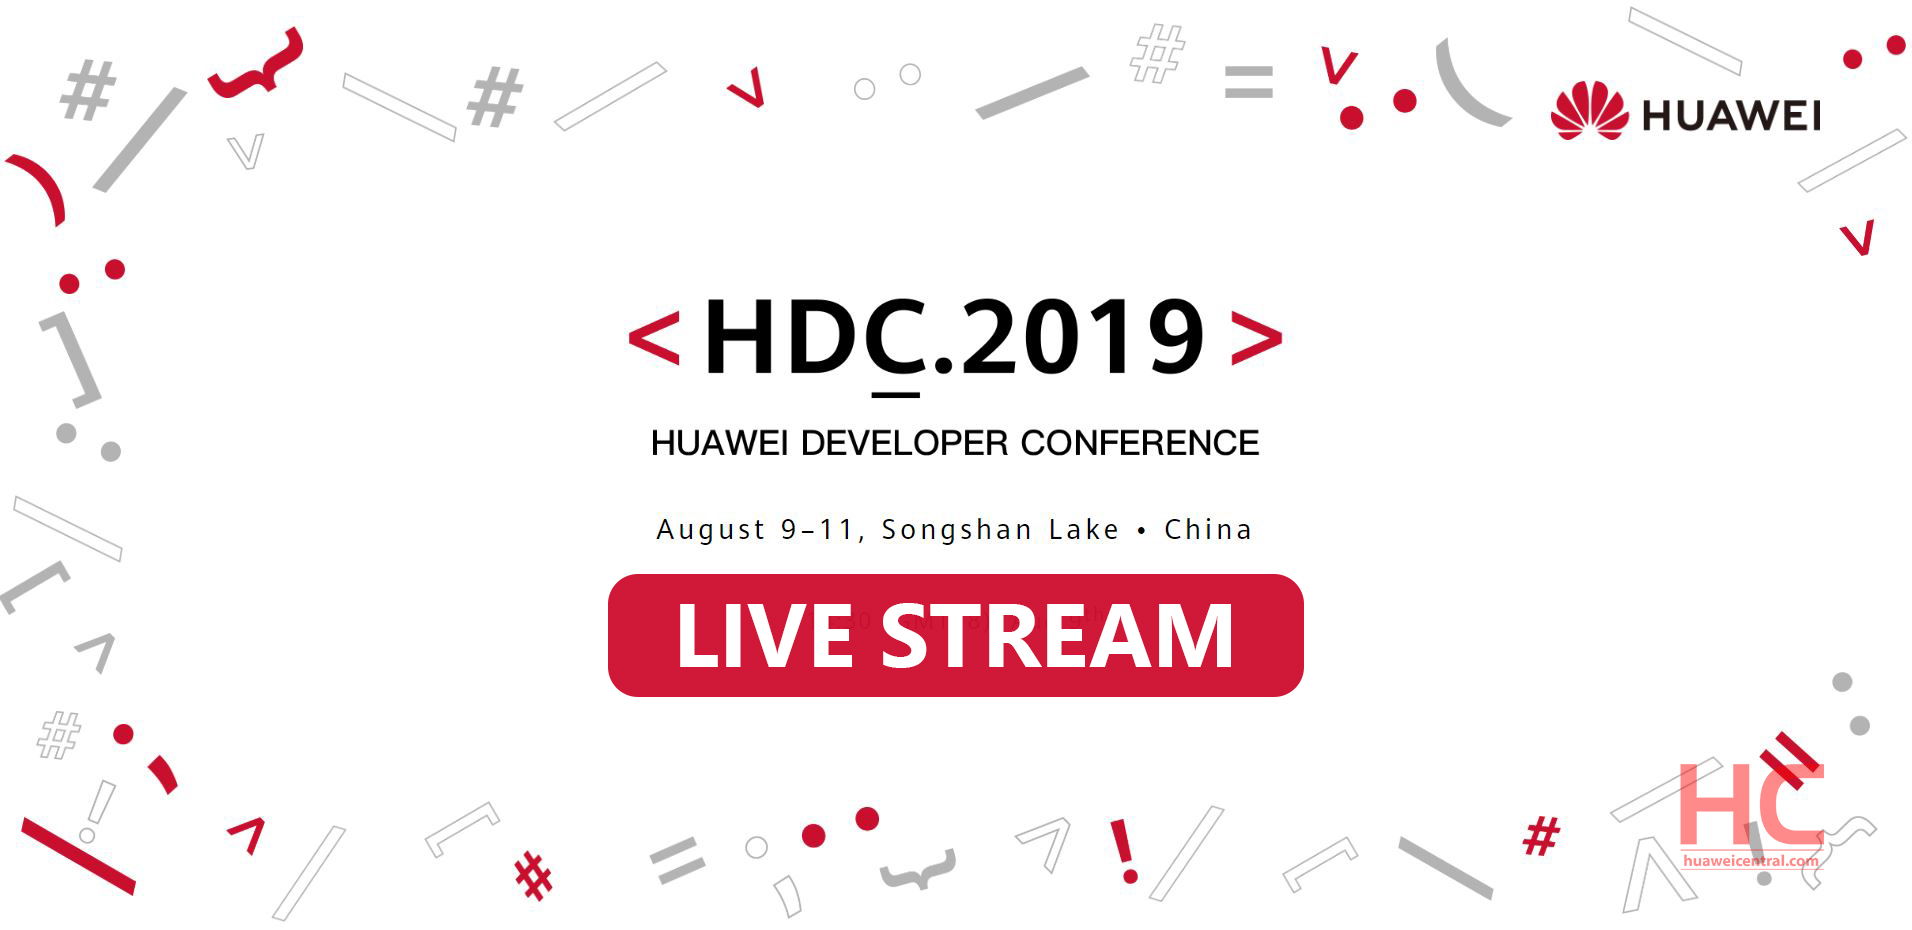 How to watch HDC 2019: Catch EMUI 10, Hongmeng OS and more - Huawei